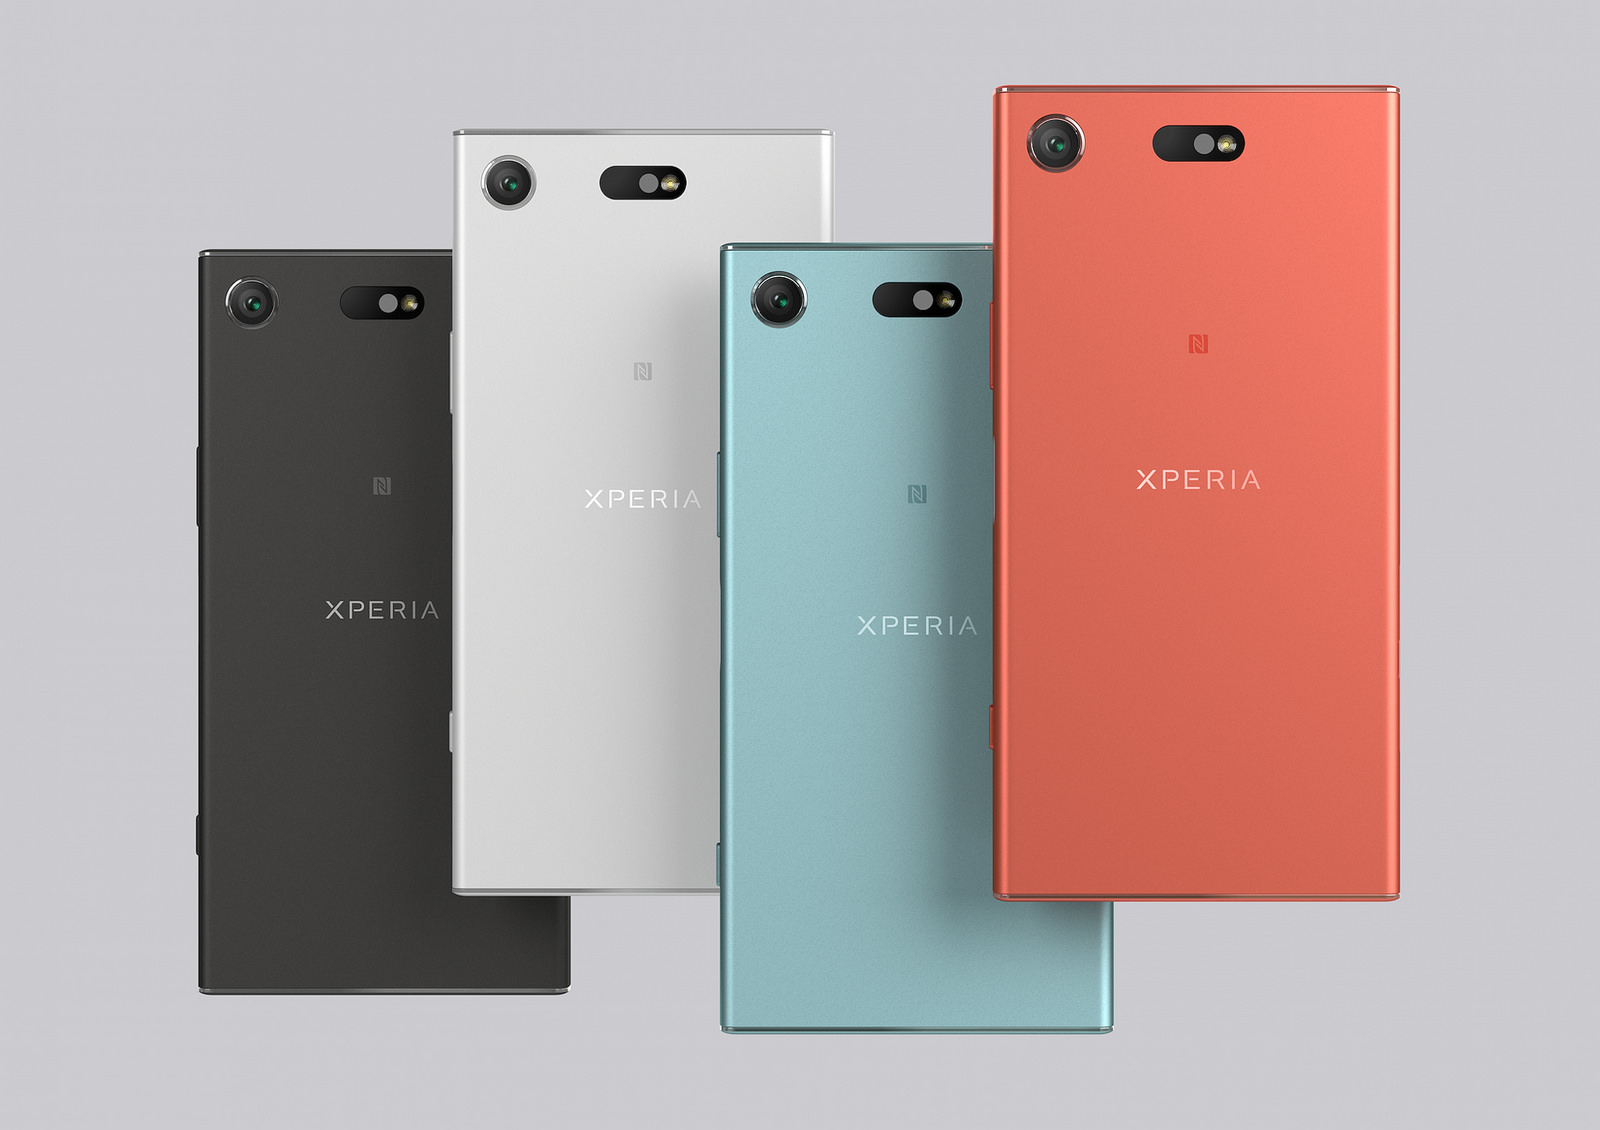 Red Xperia XZ Premium will come with Android 8.0 in select markets